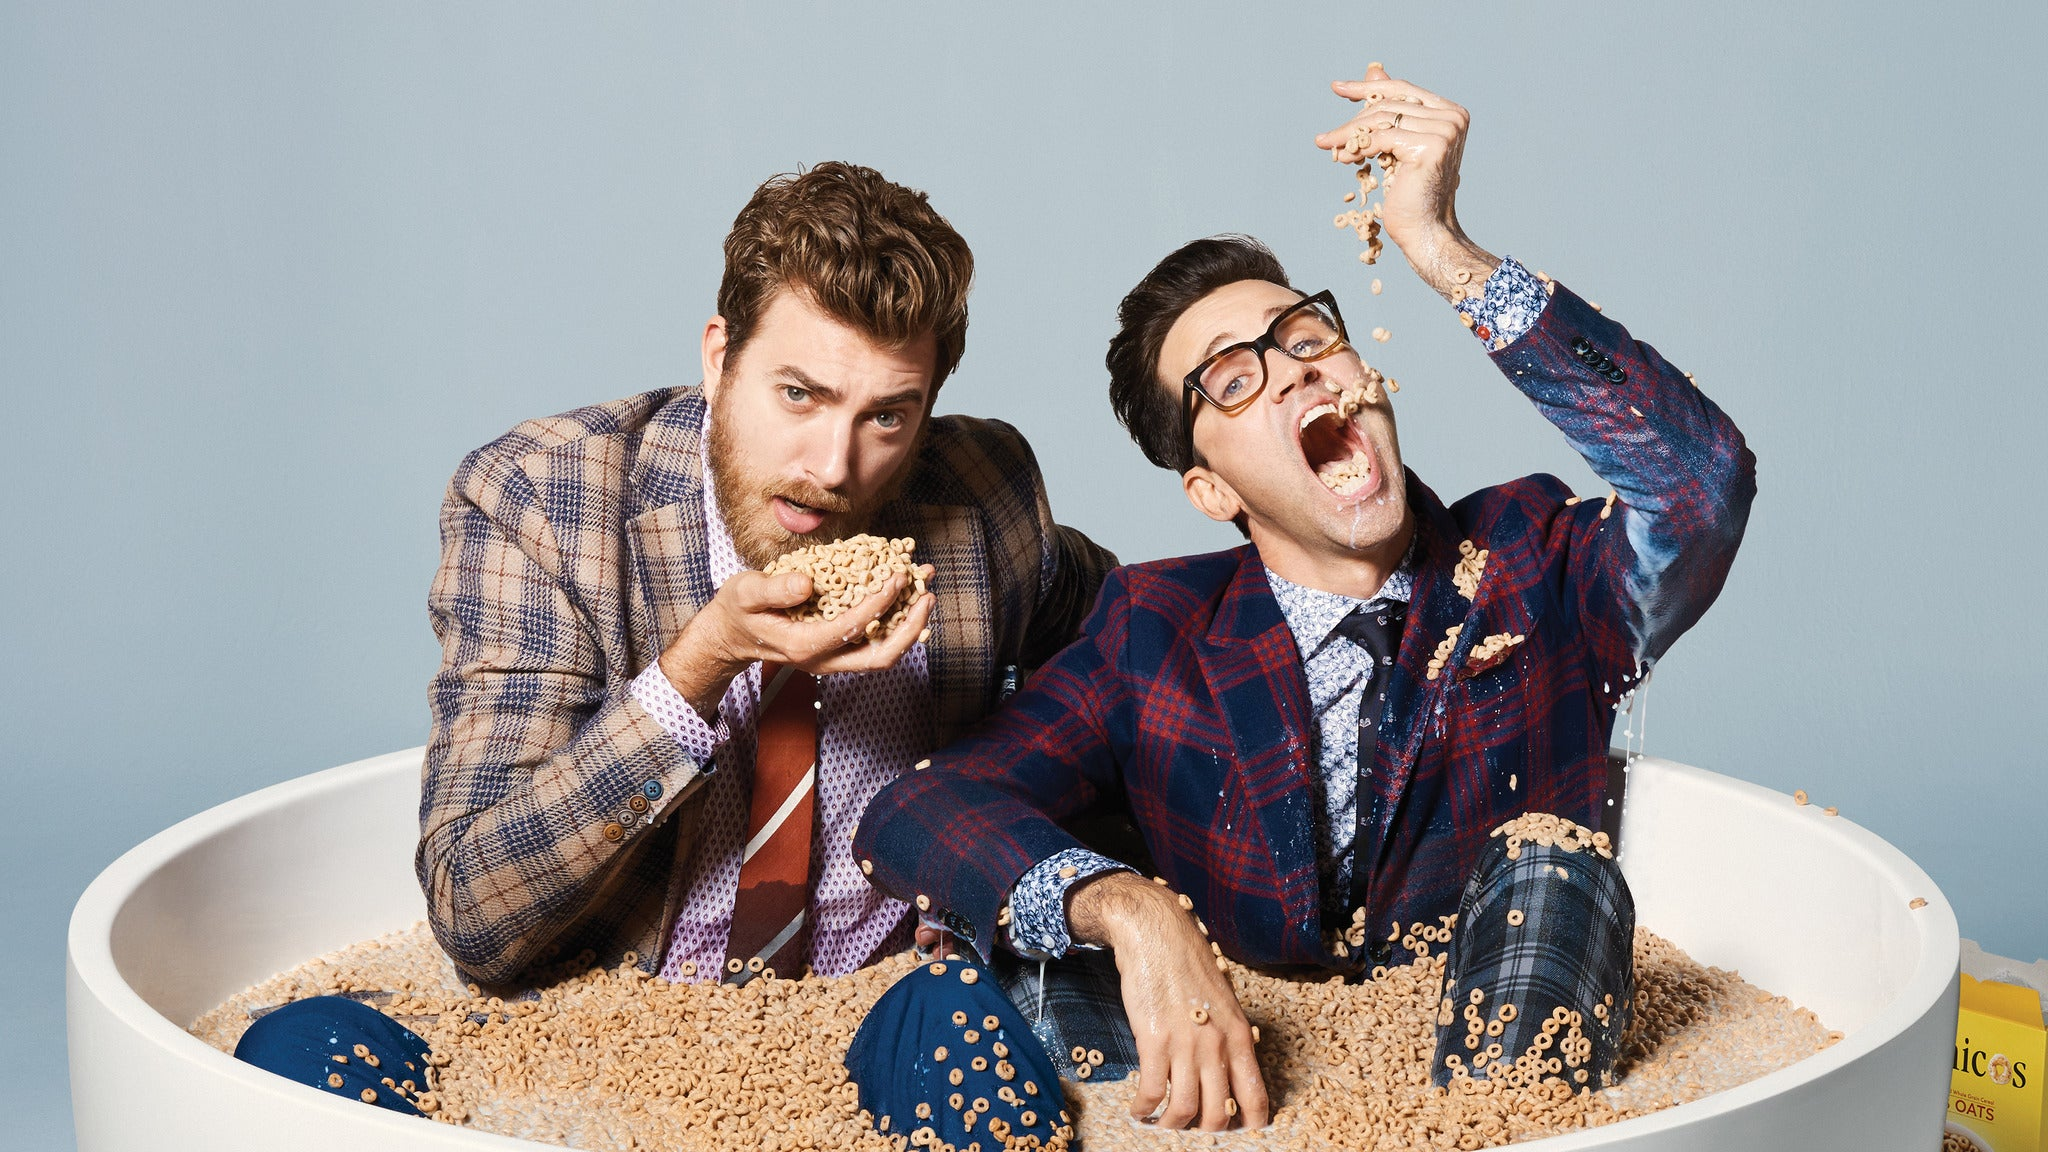 Rhett & Link at Caesars Atlantic City - Atlantic City, NJ 08404